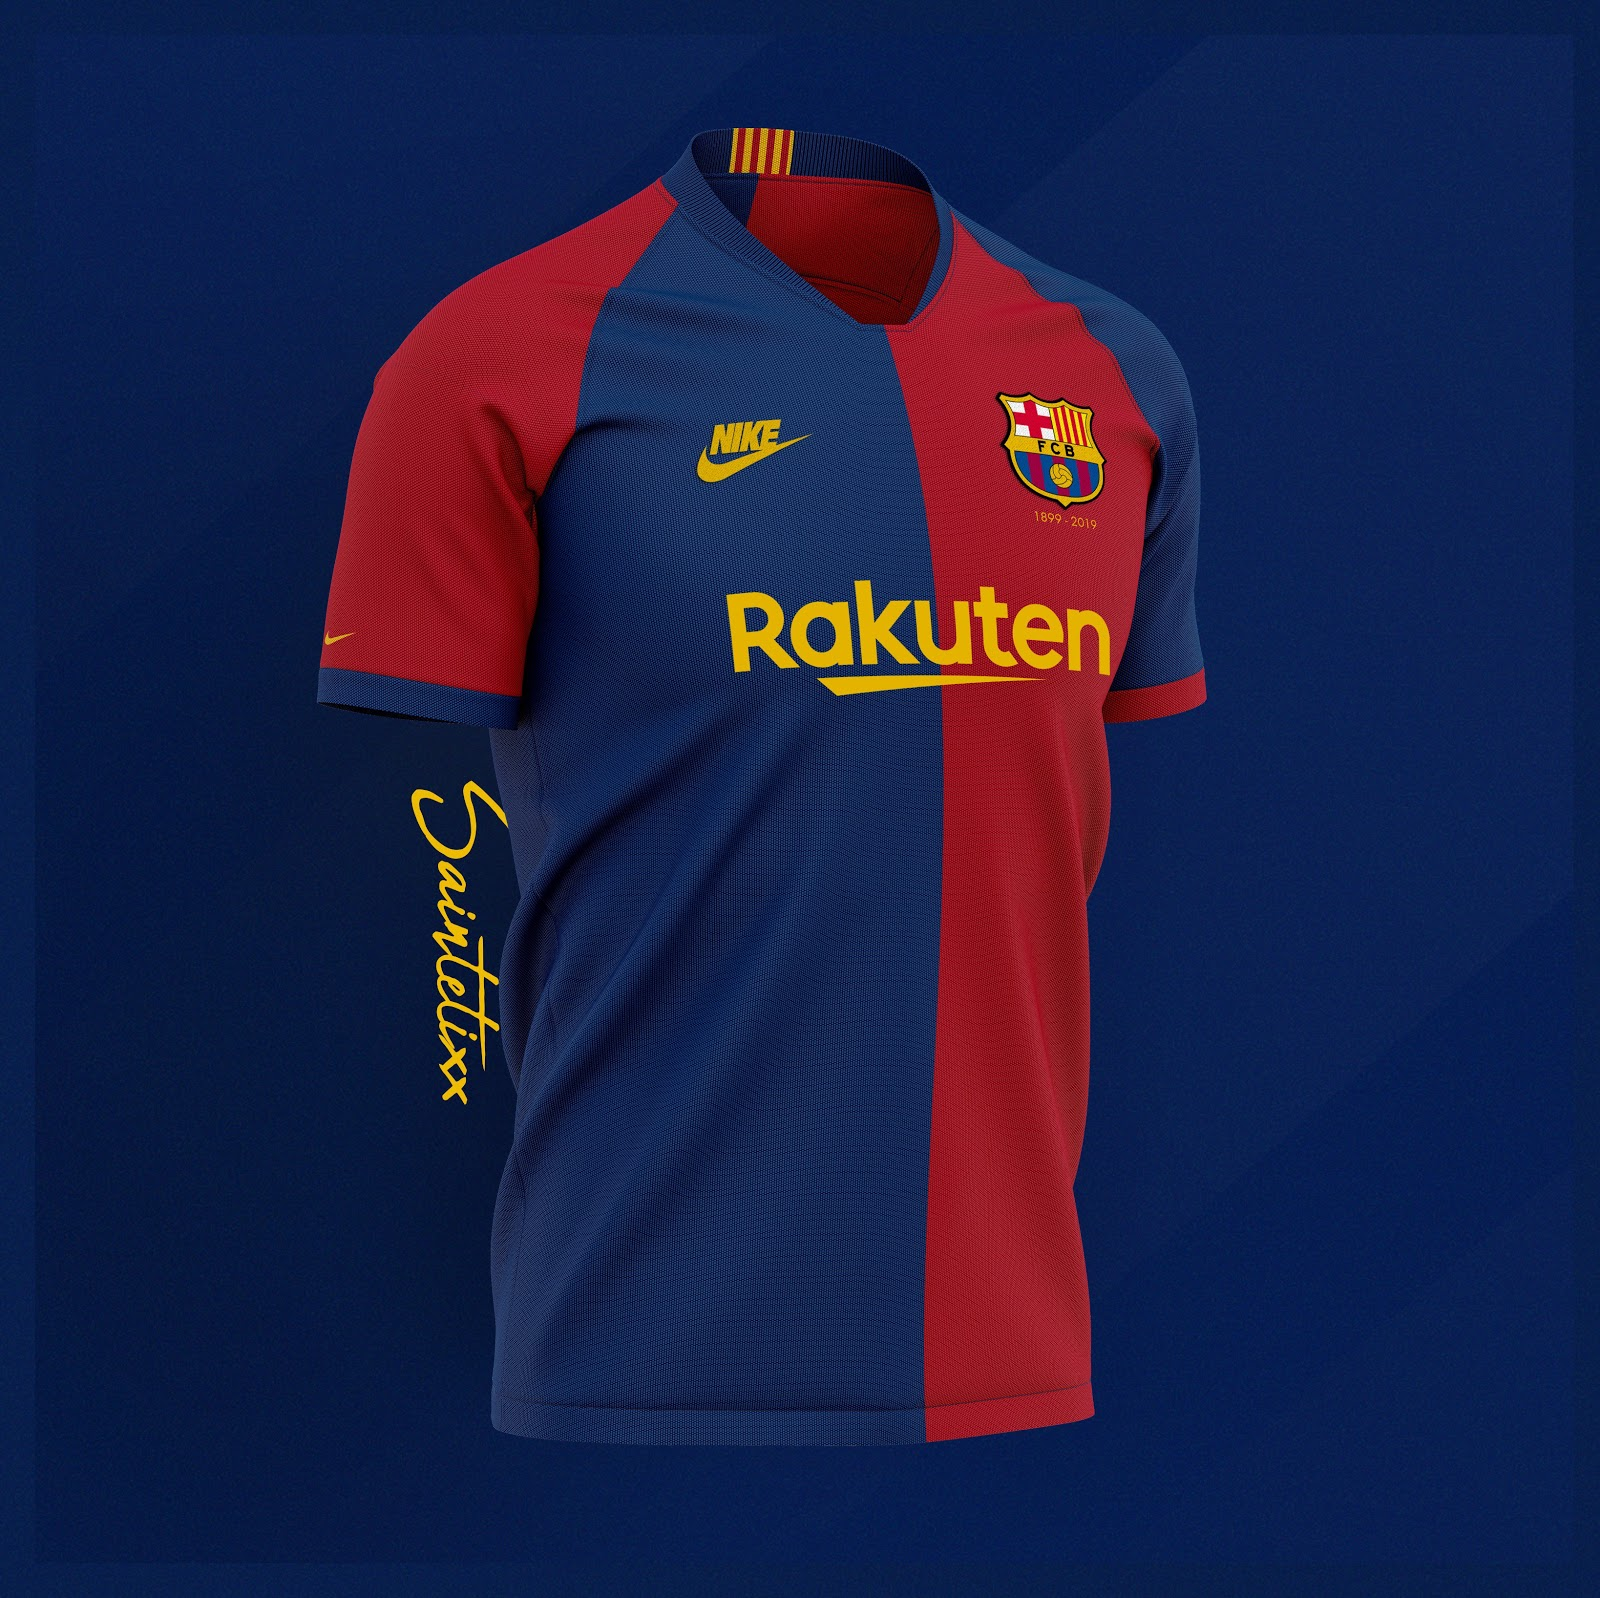 7b148a7505b Nike FC Barcelona 120-Years Anniversary Home, Away & Third Kit ...